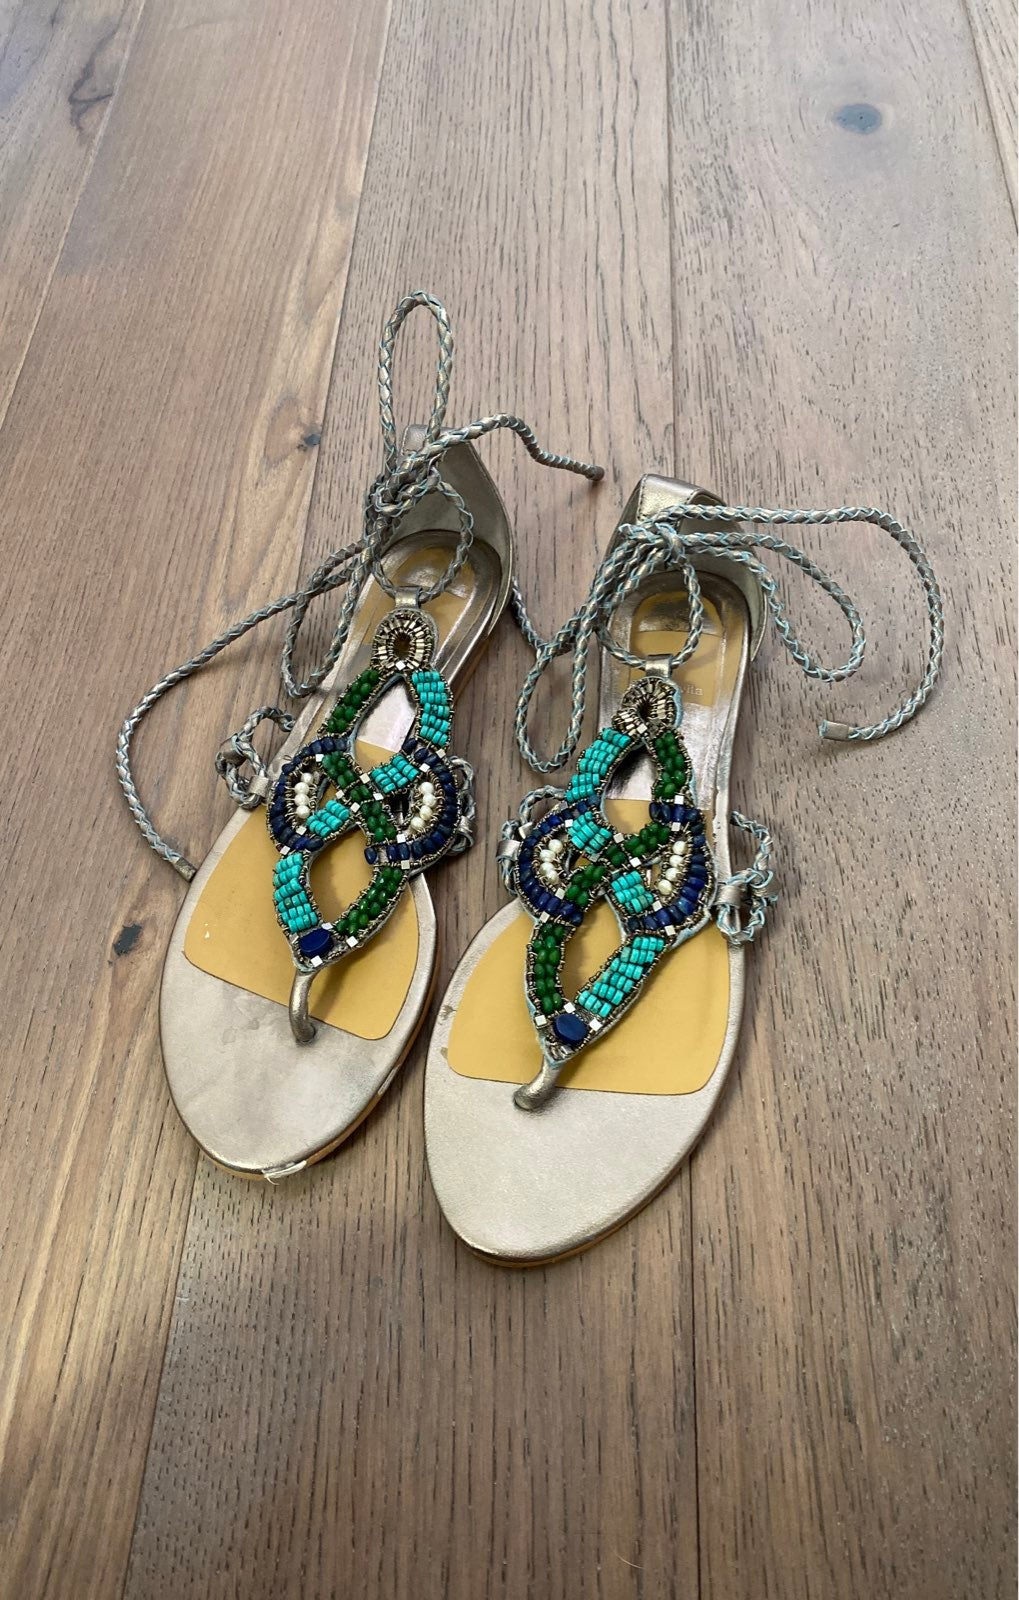 Dolce Vita Beaded Sandals size 7.5